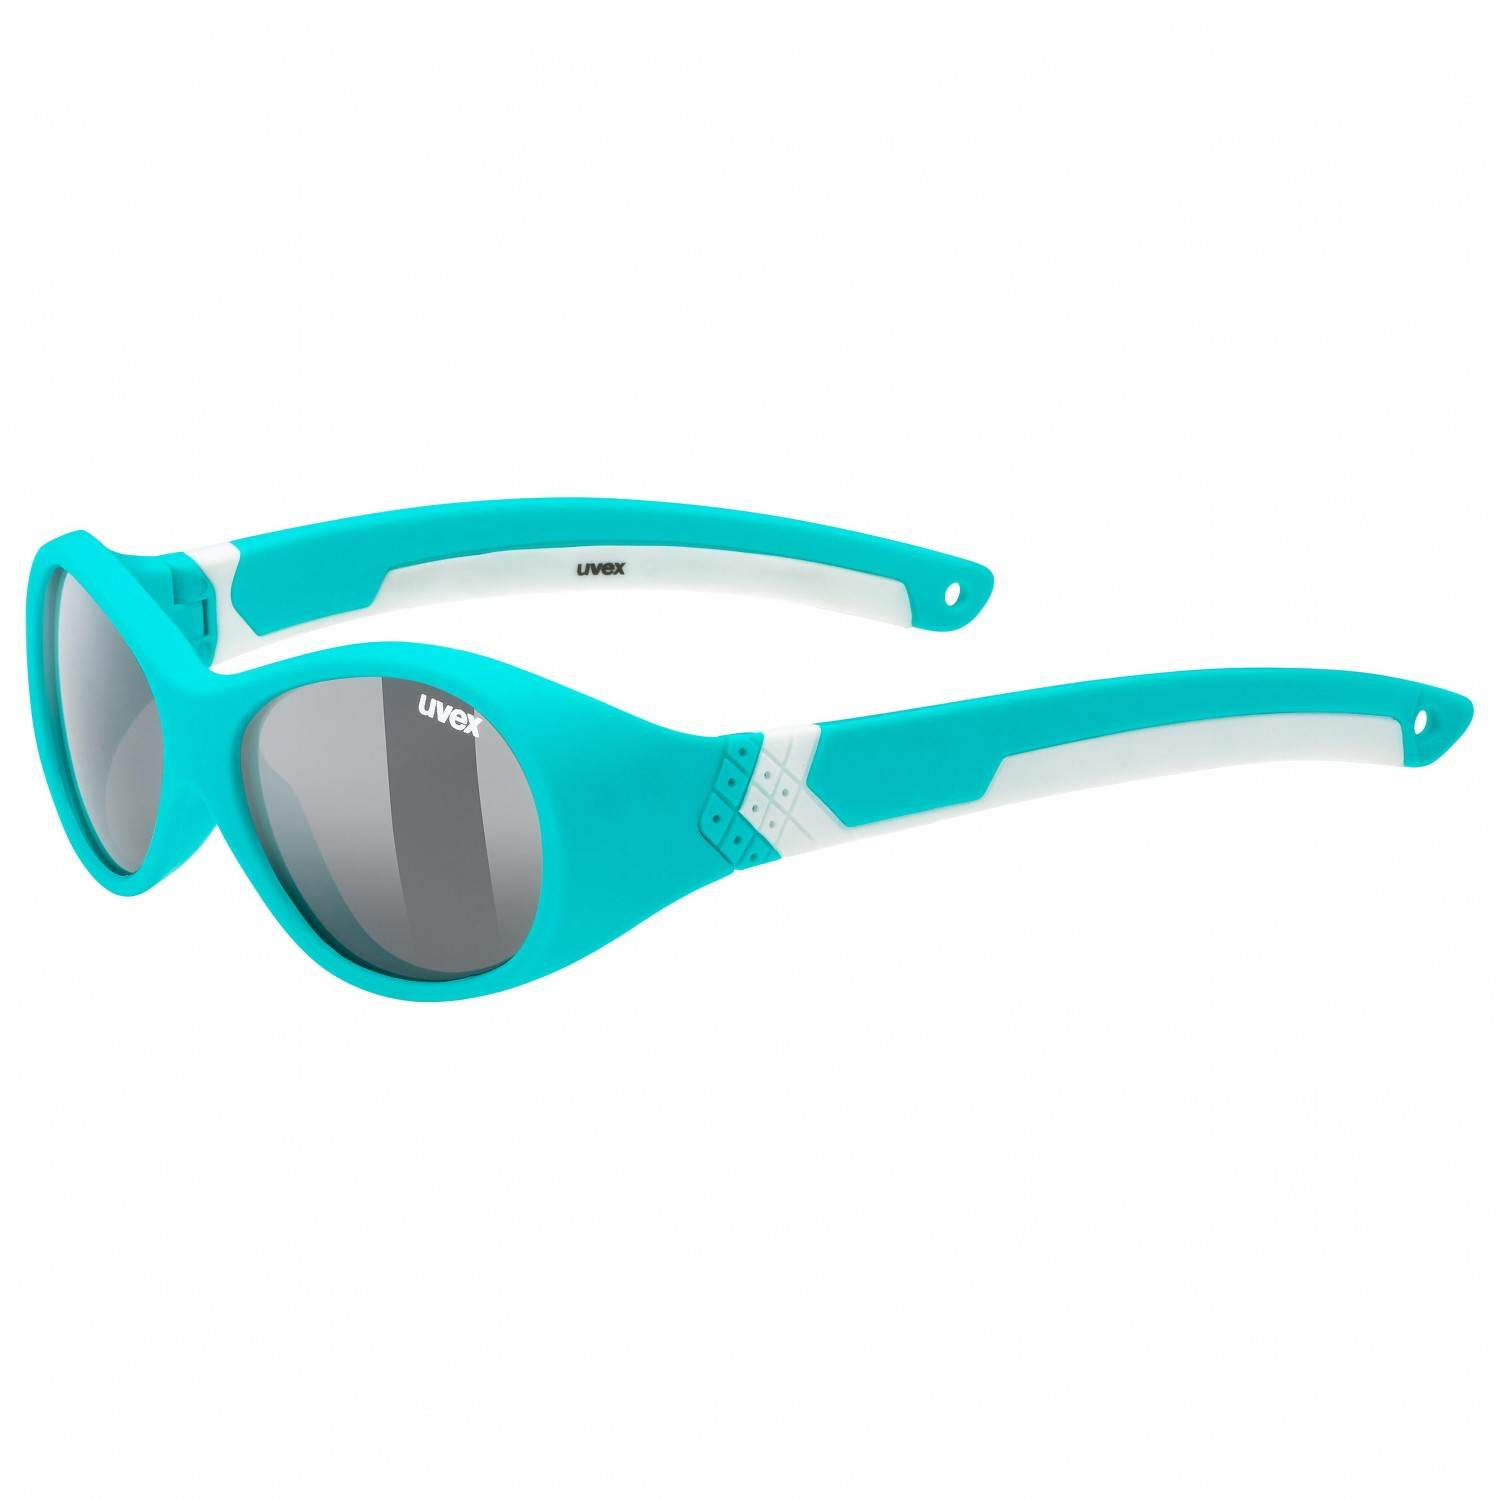 uvex-sportstyle-510-kinder-sportbrille-farbe-4716-blue-green-mat-mirror-silver-s3-